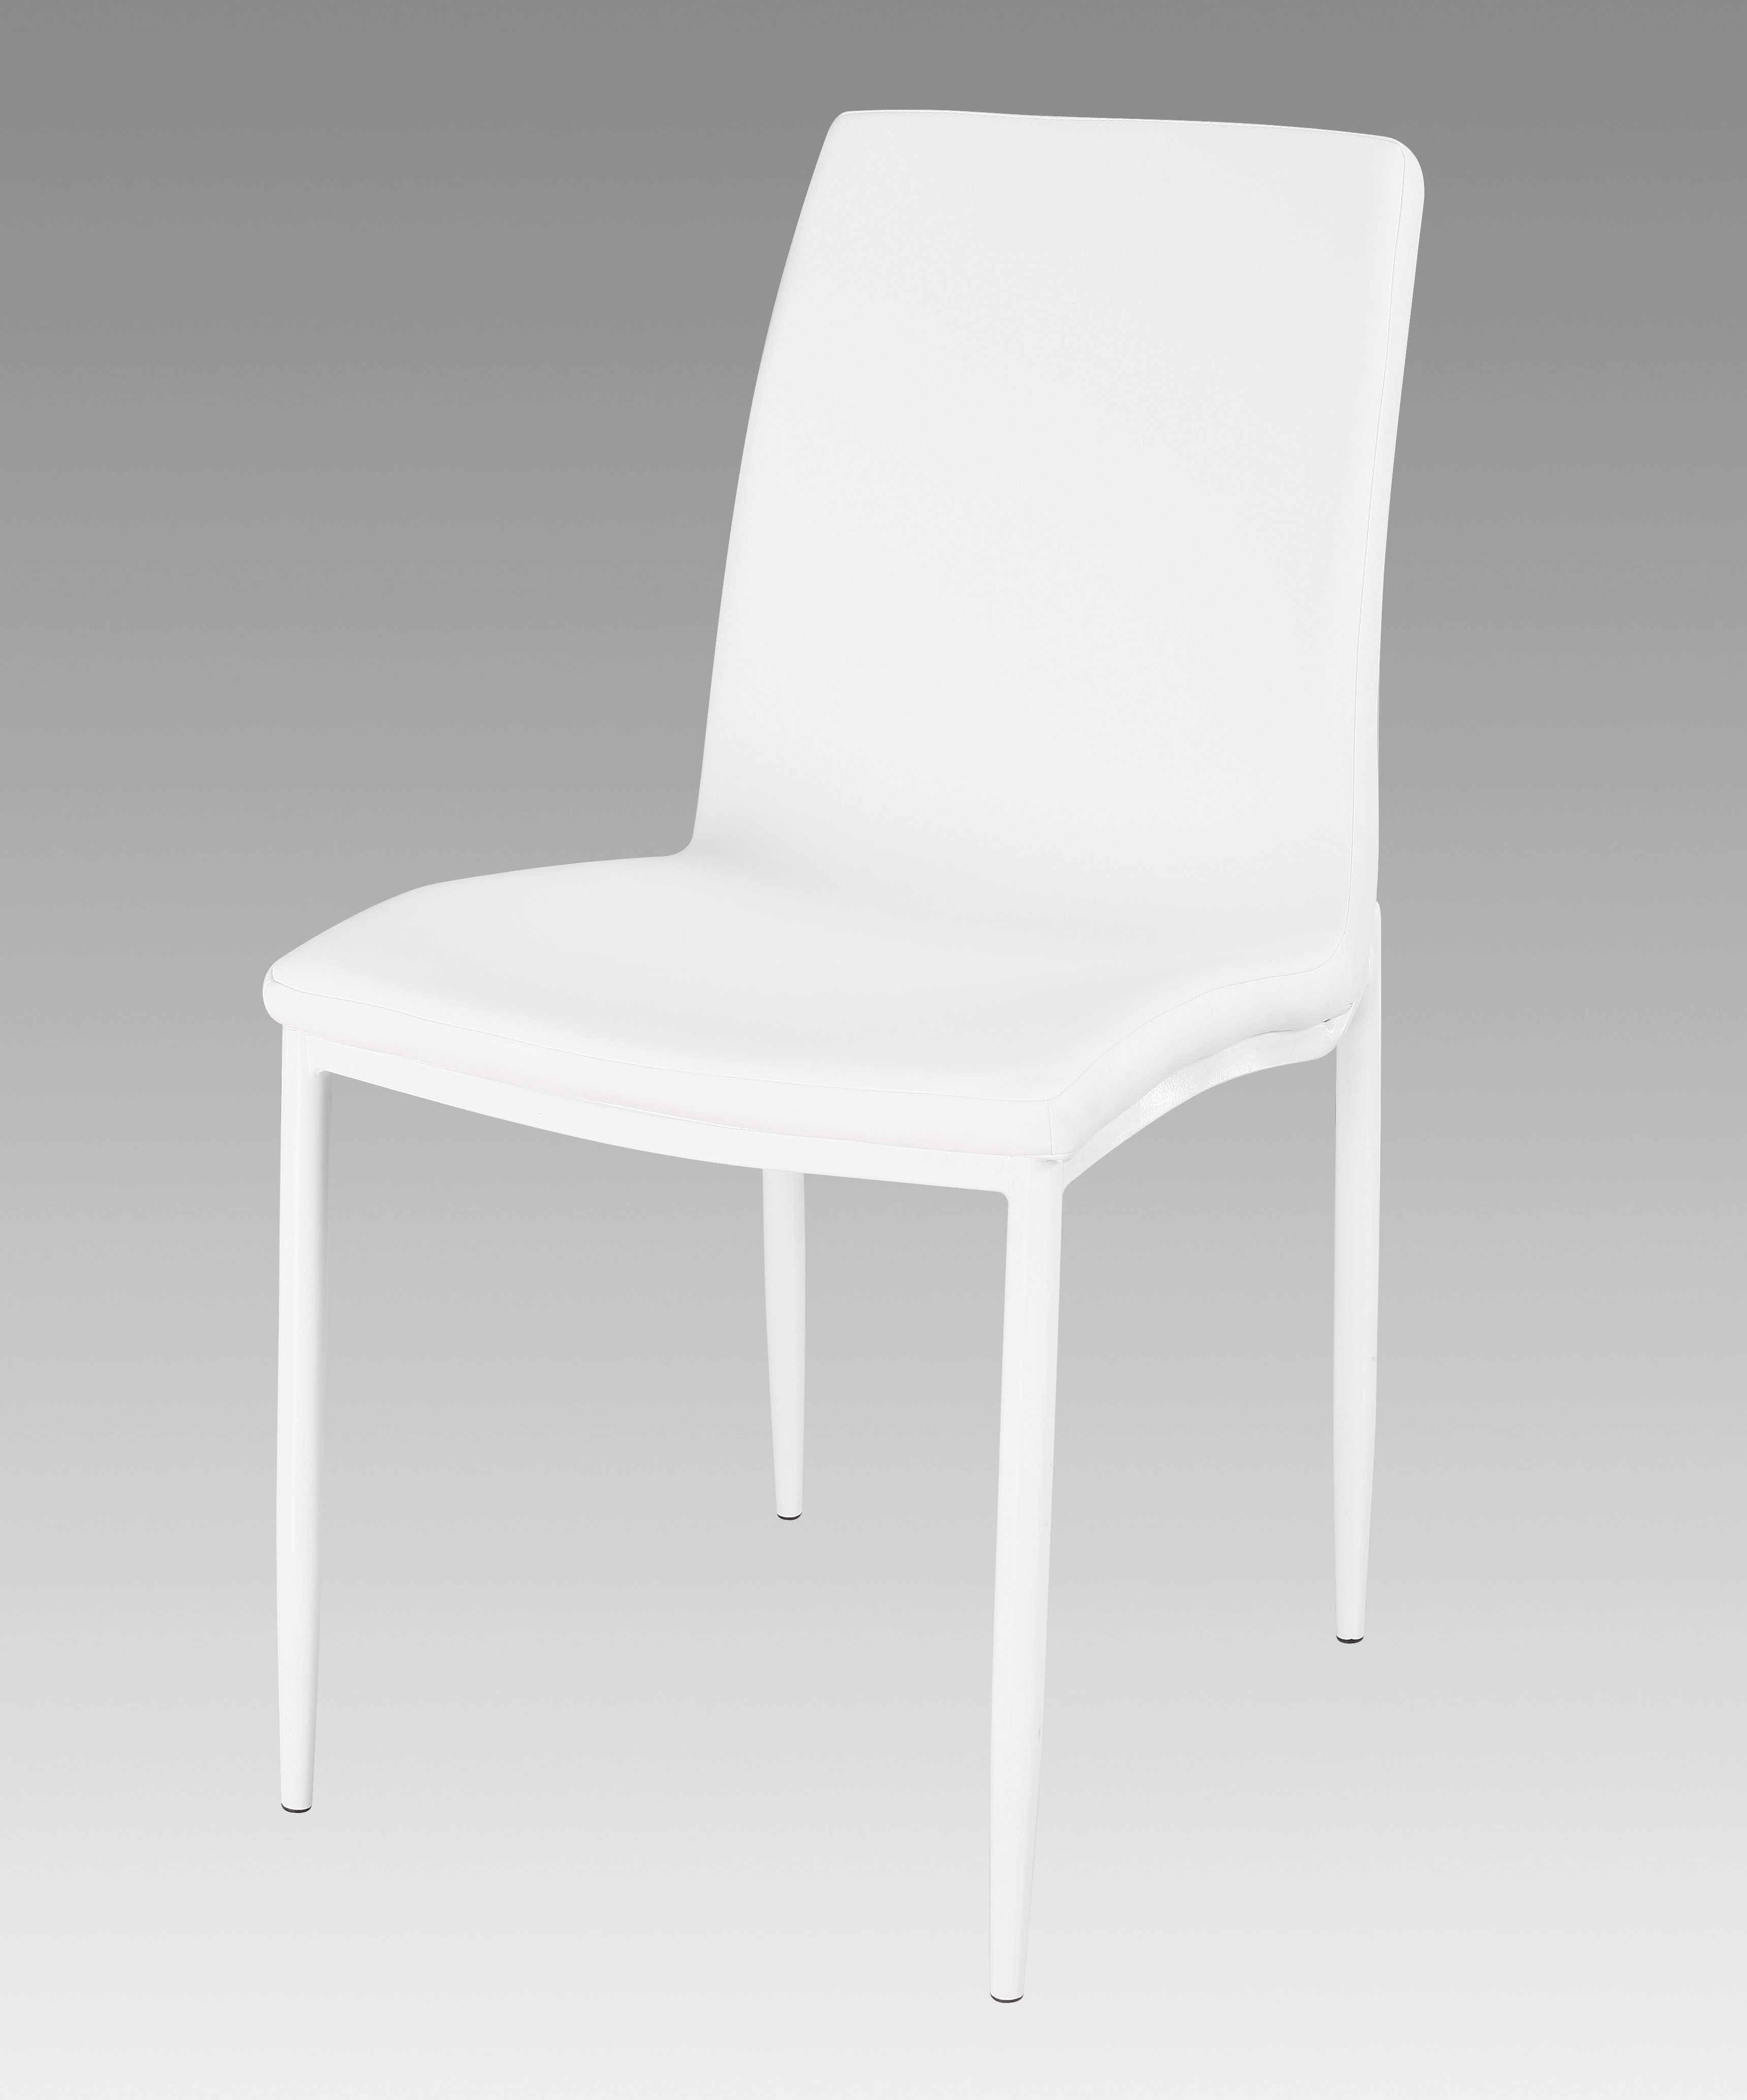 White Upholstered Chair White Upholstered Side Chairs With Glossy White Finished